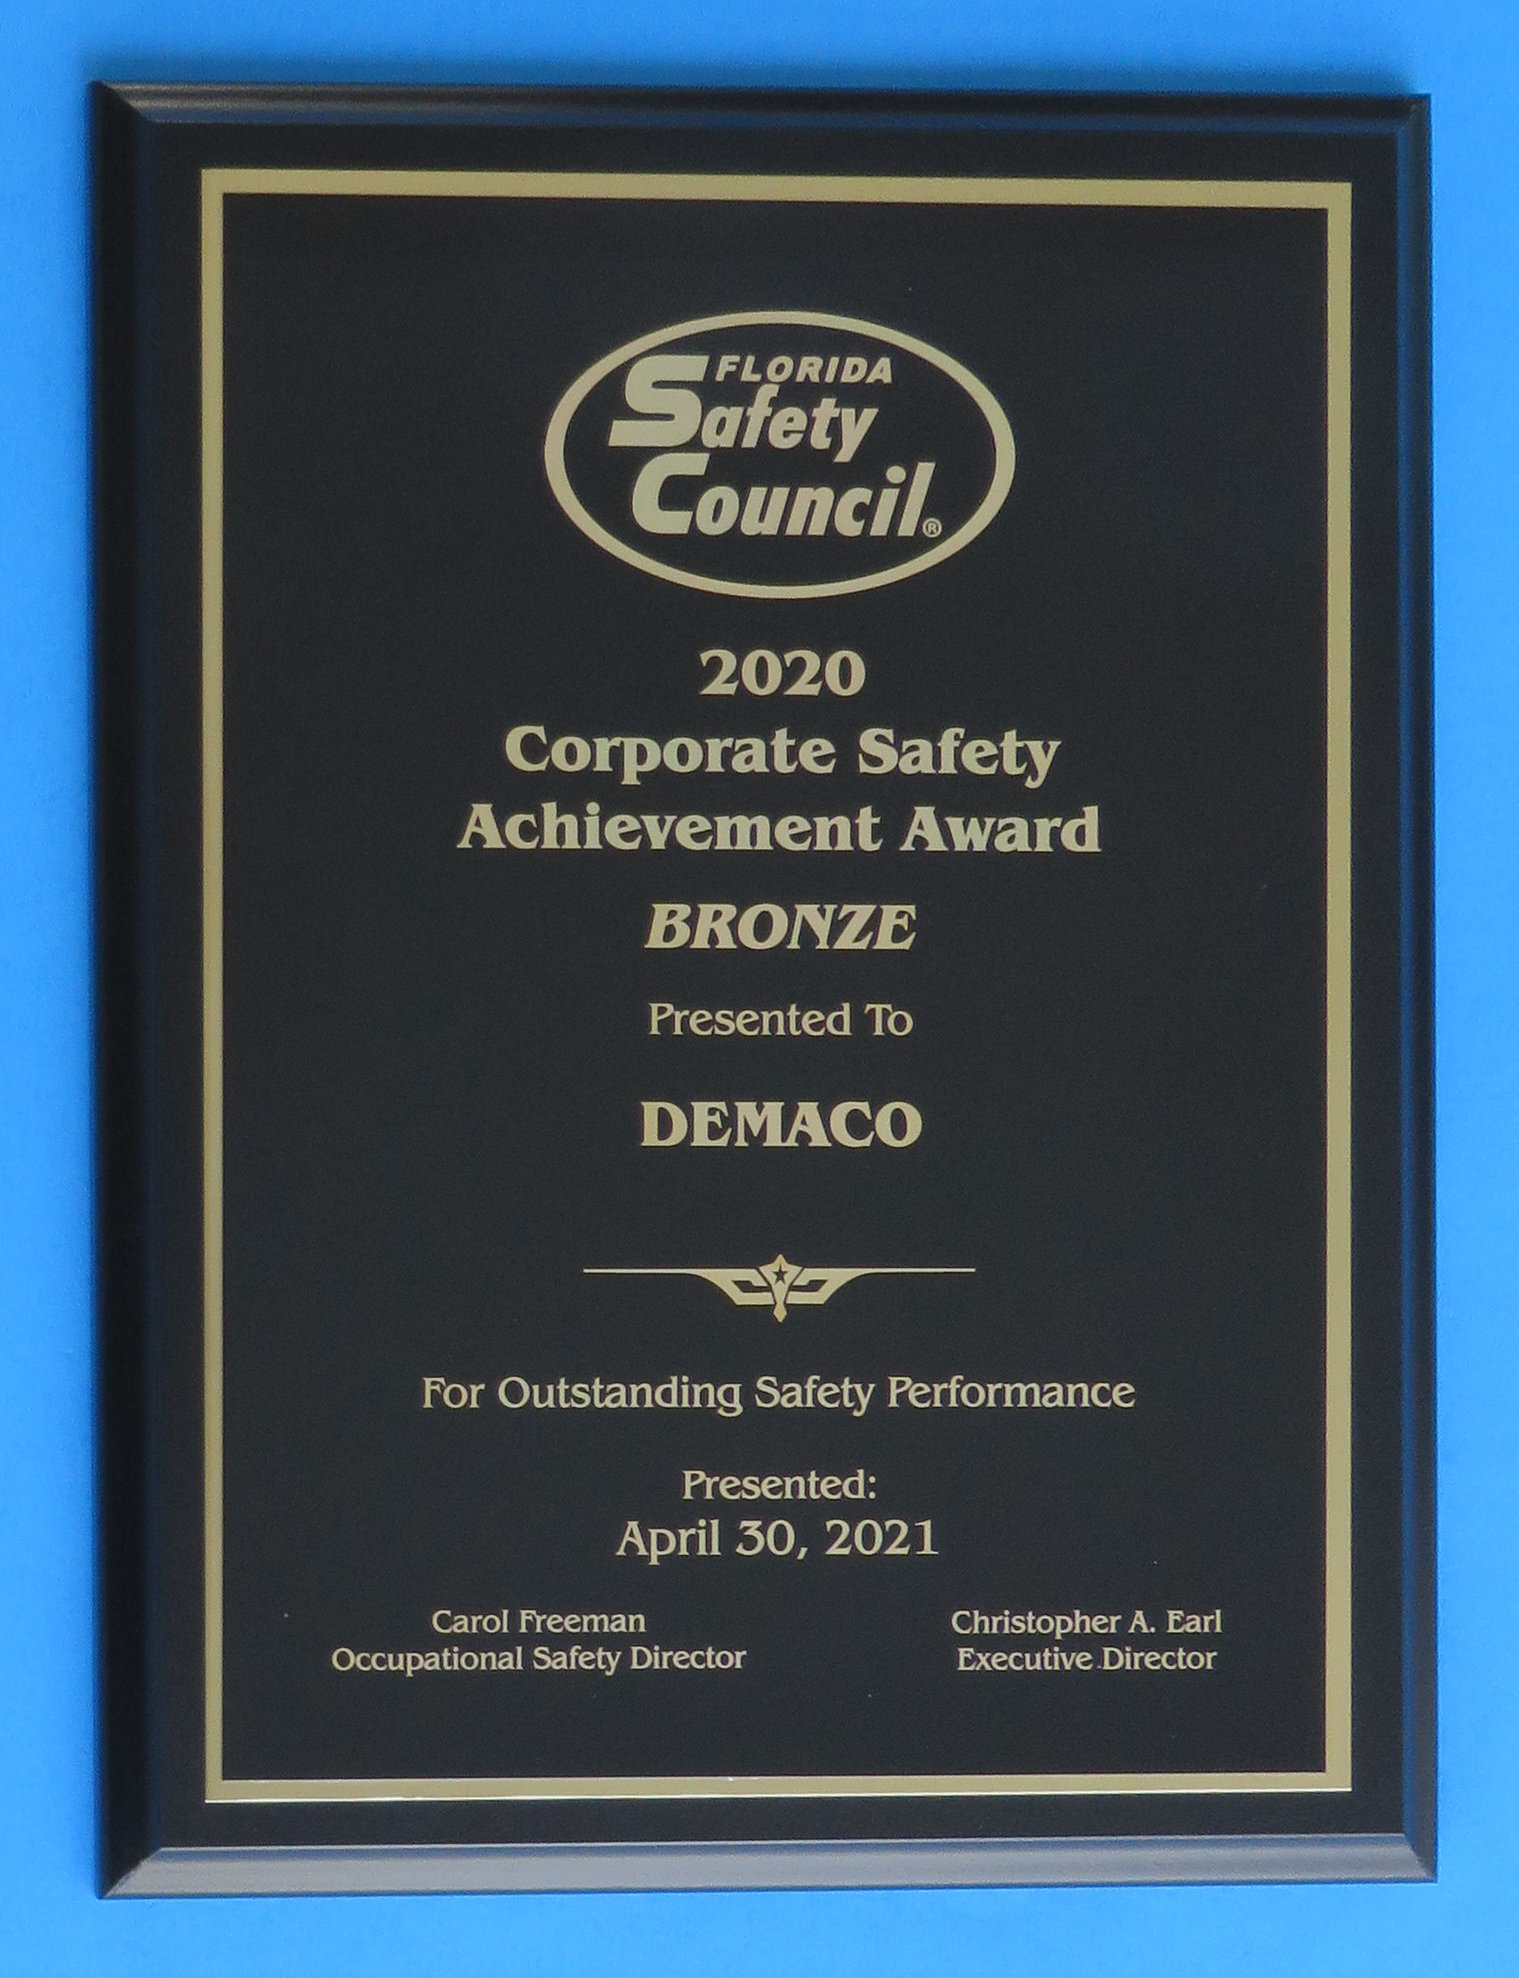 Florida Safety Council Recognized DEMACO for Safety While Building High-Capacity Pasta Machines